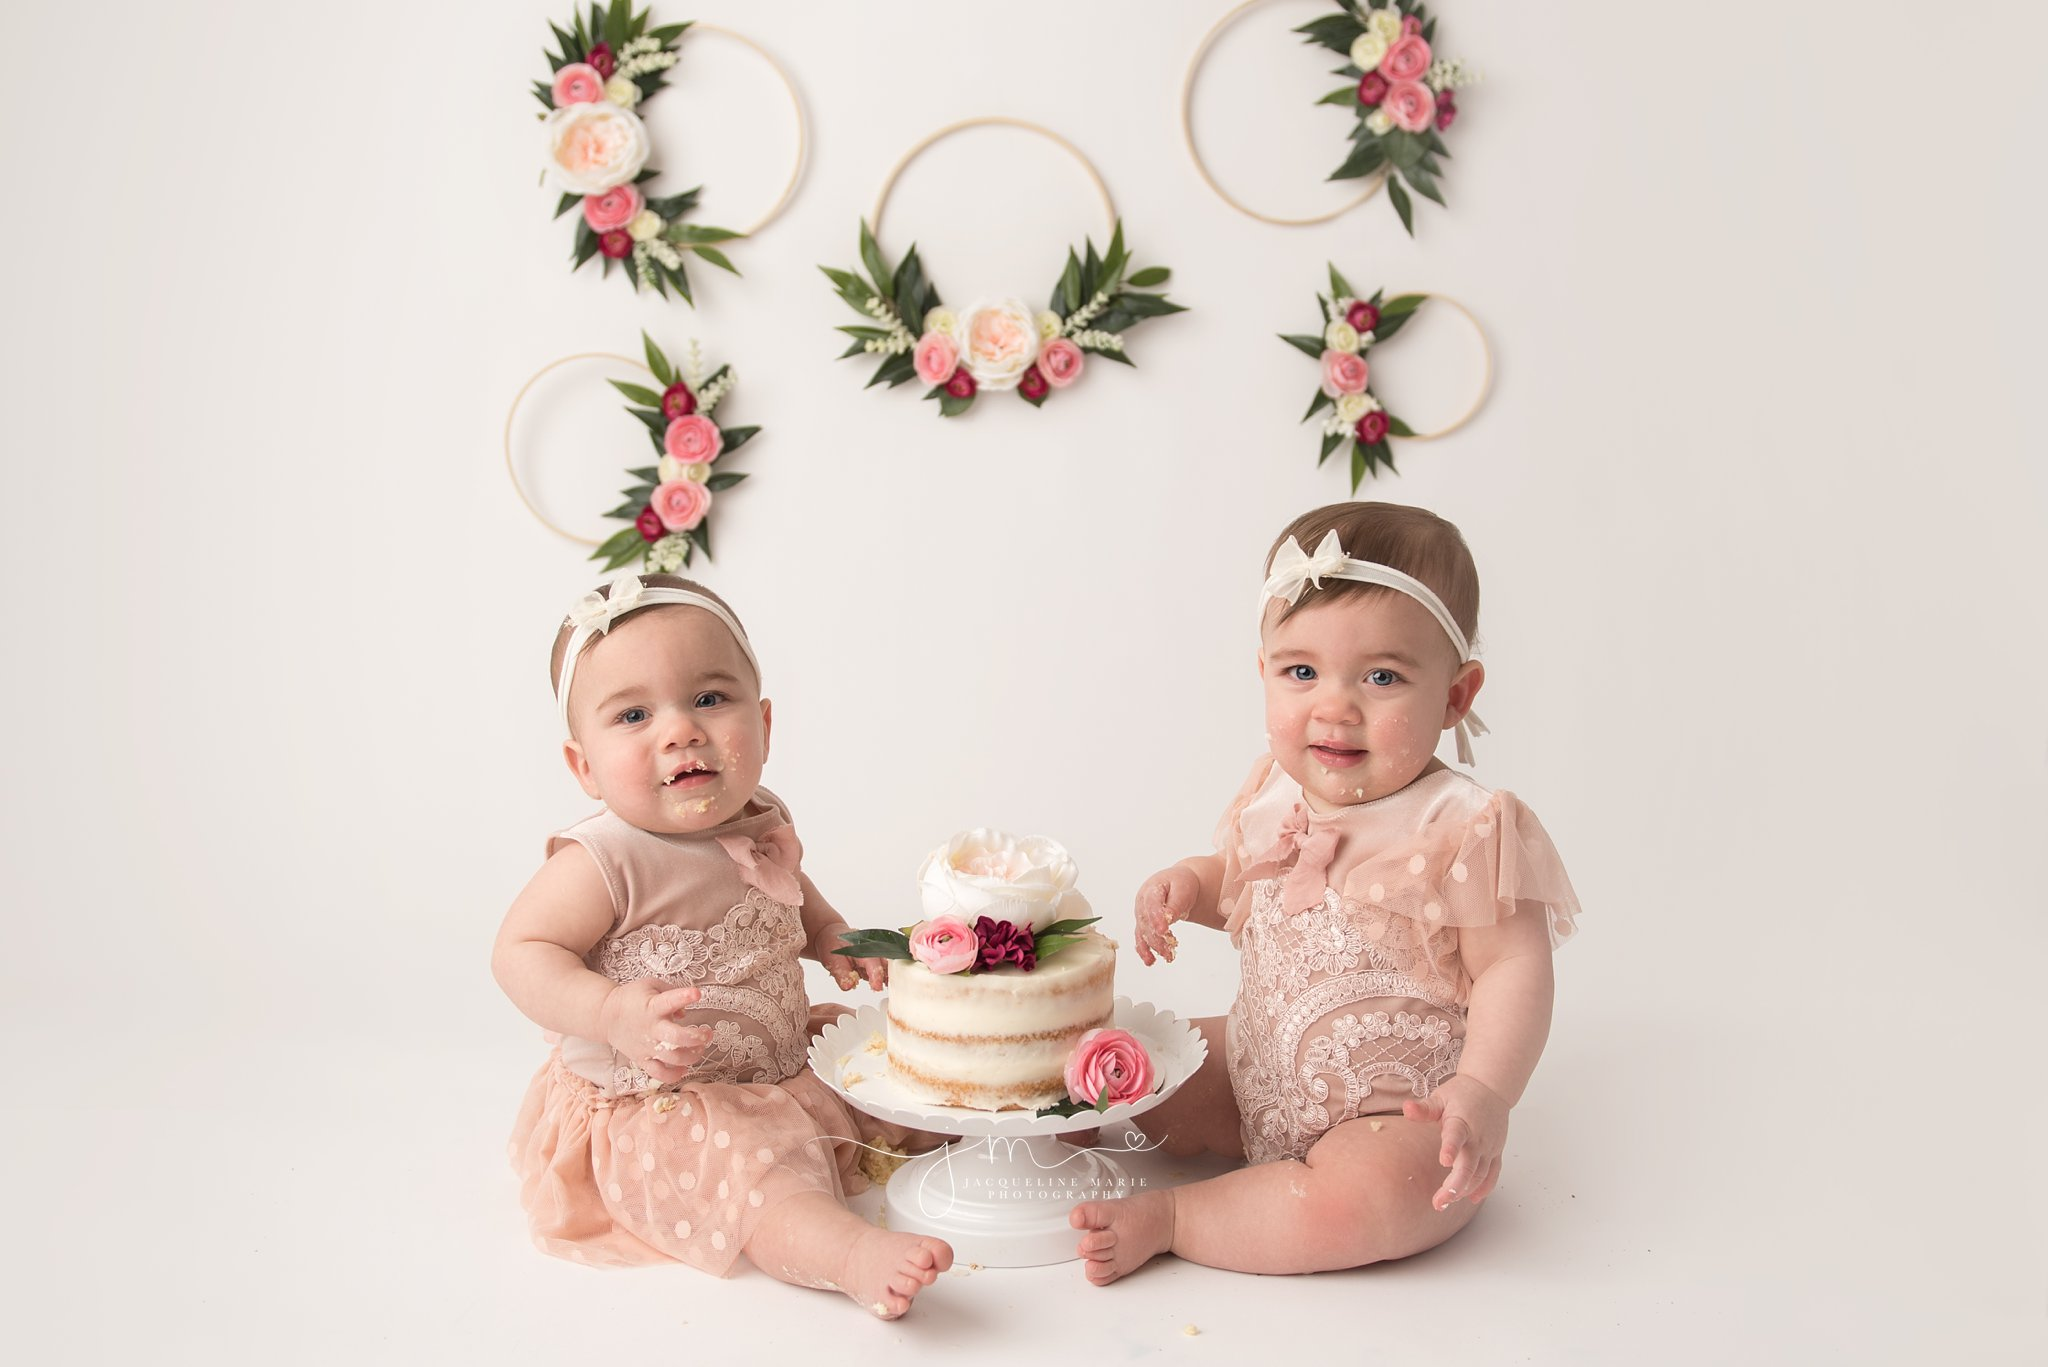 twin sisters share a floral cake for their cake smash pictures in columbus ohio